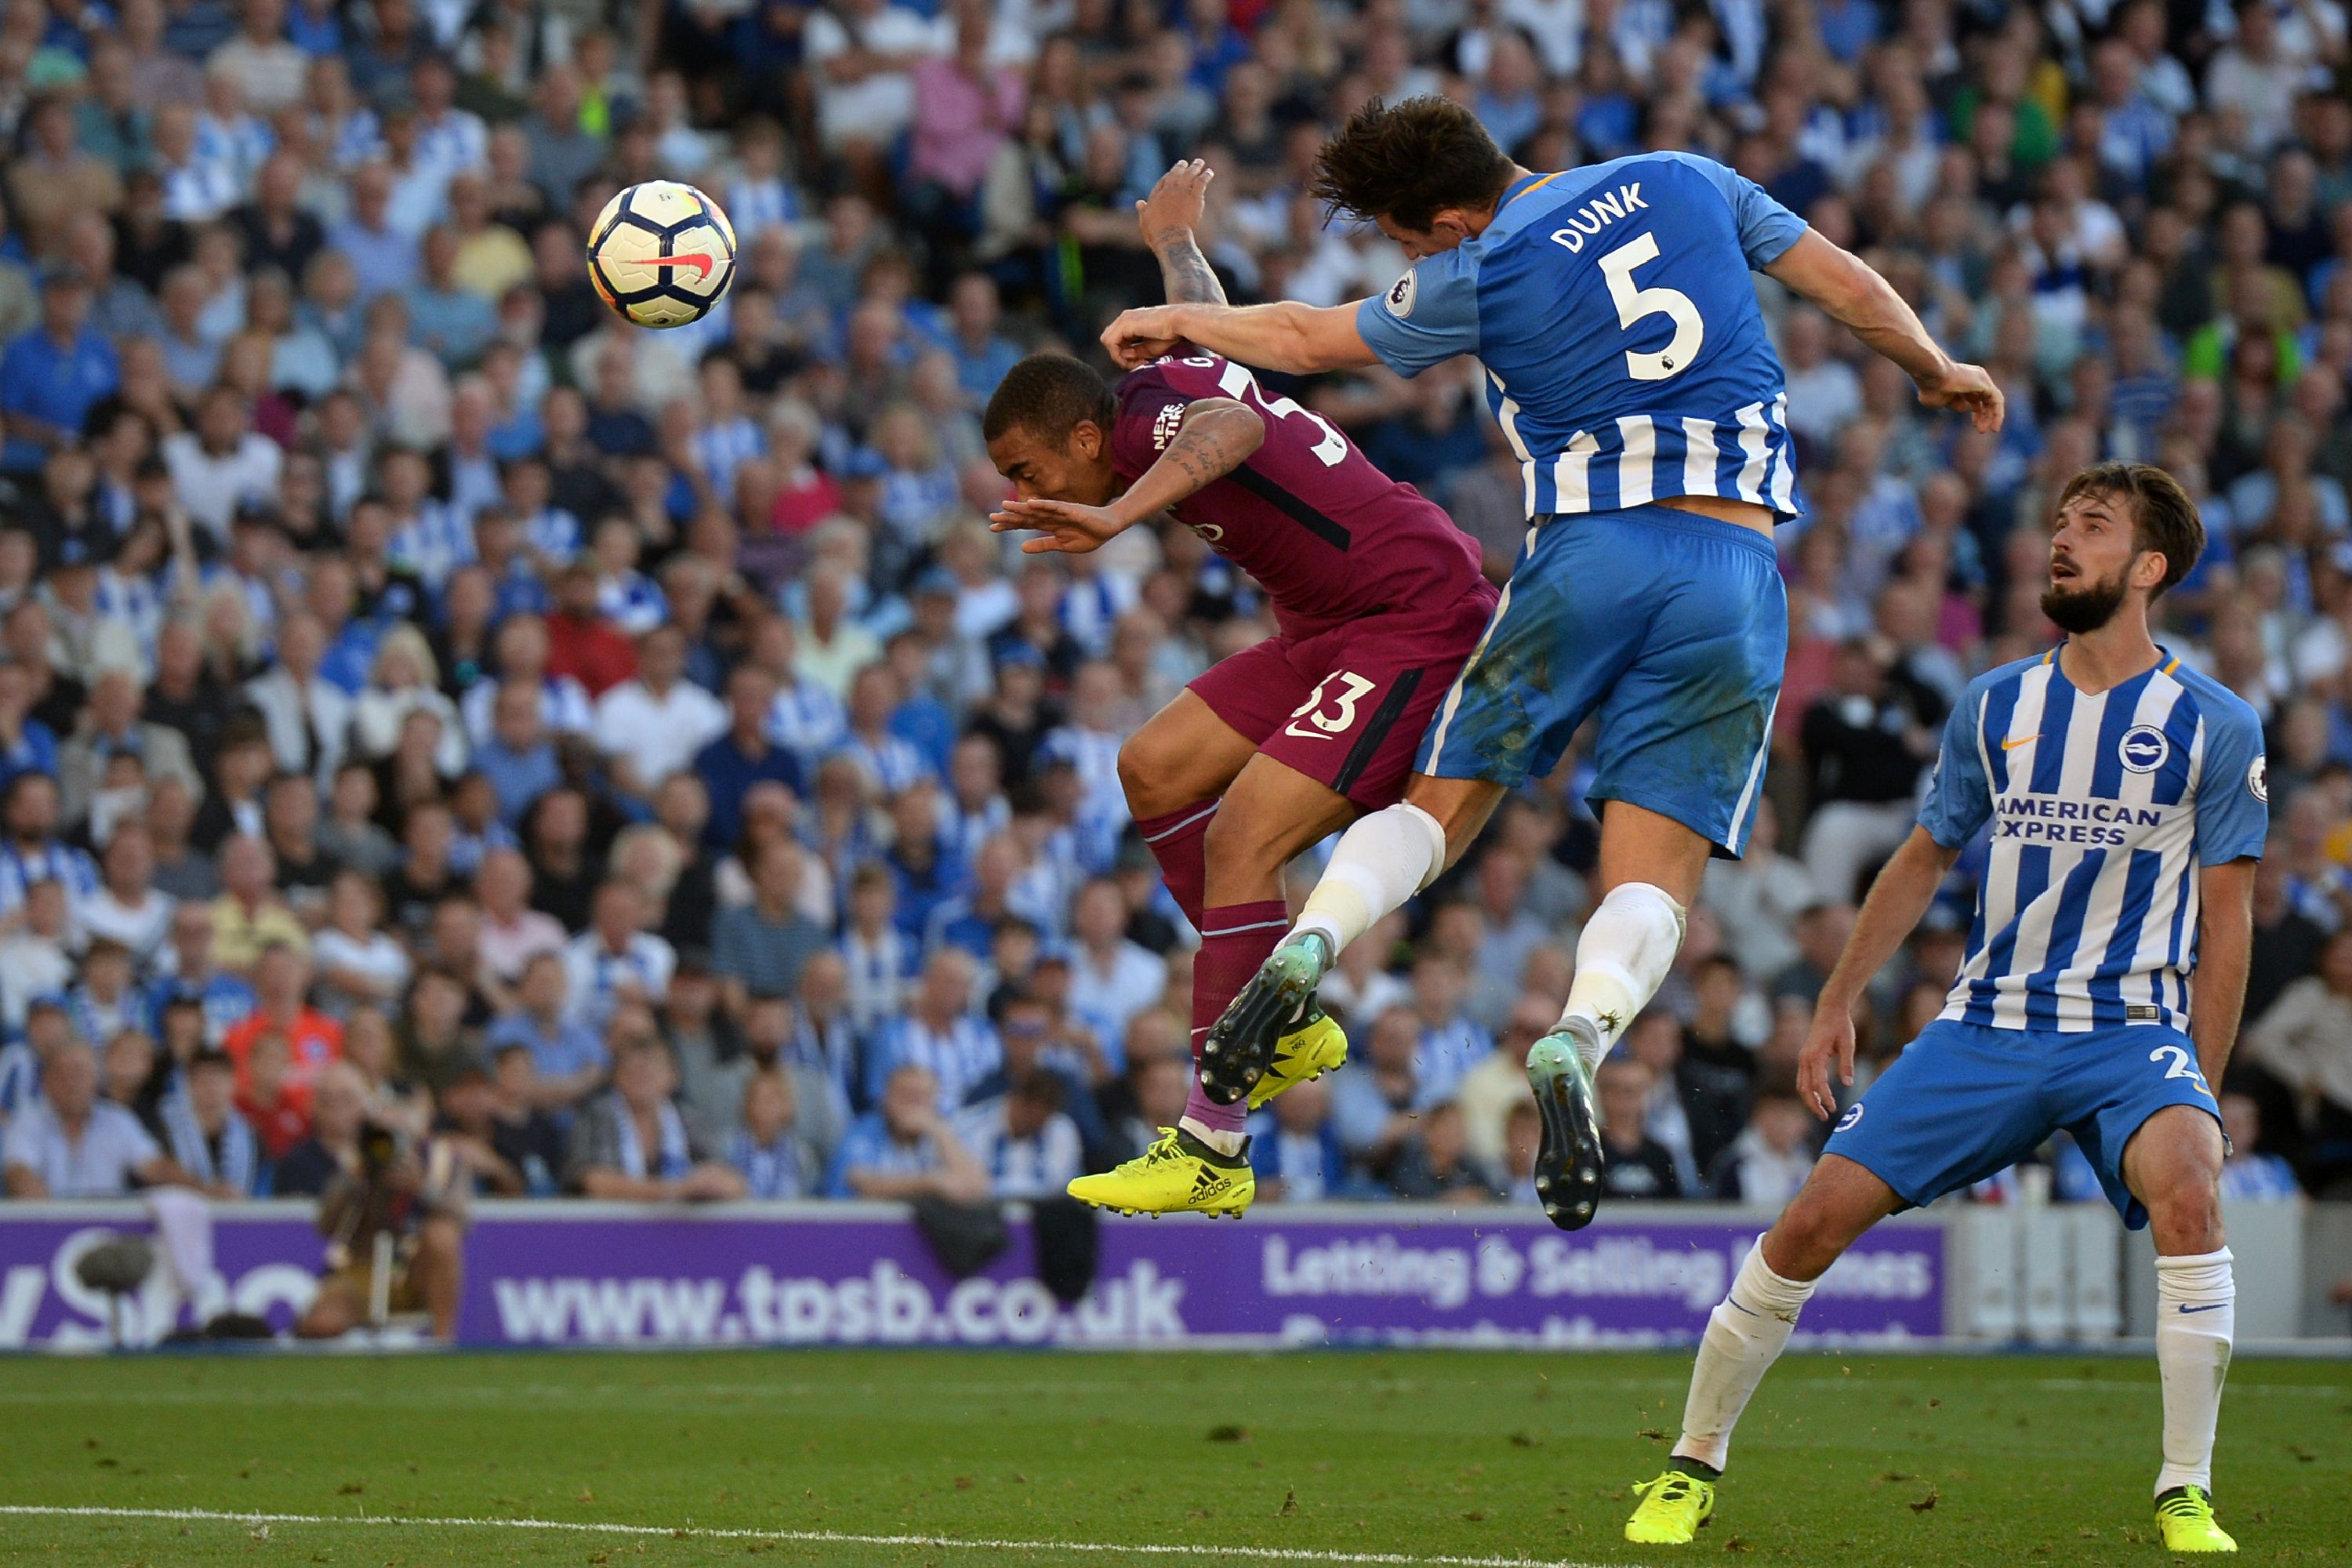 Brighton and Manchester City players jump for the ball